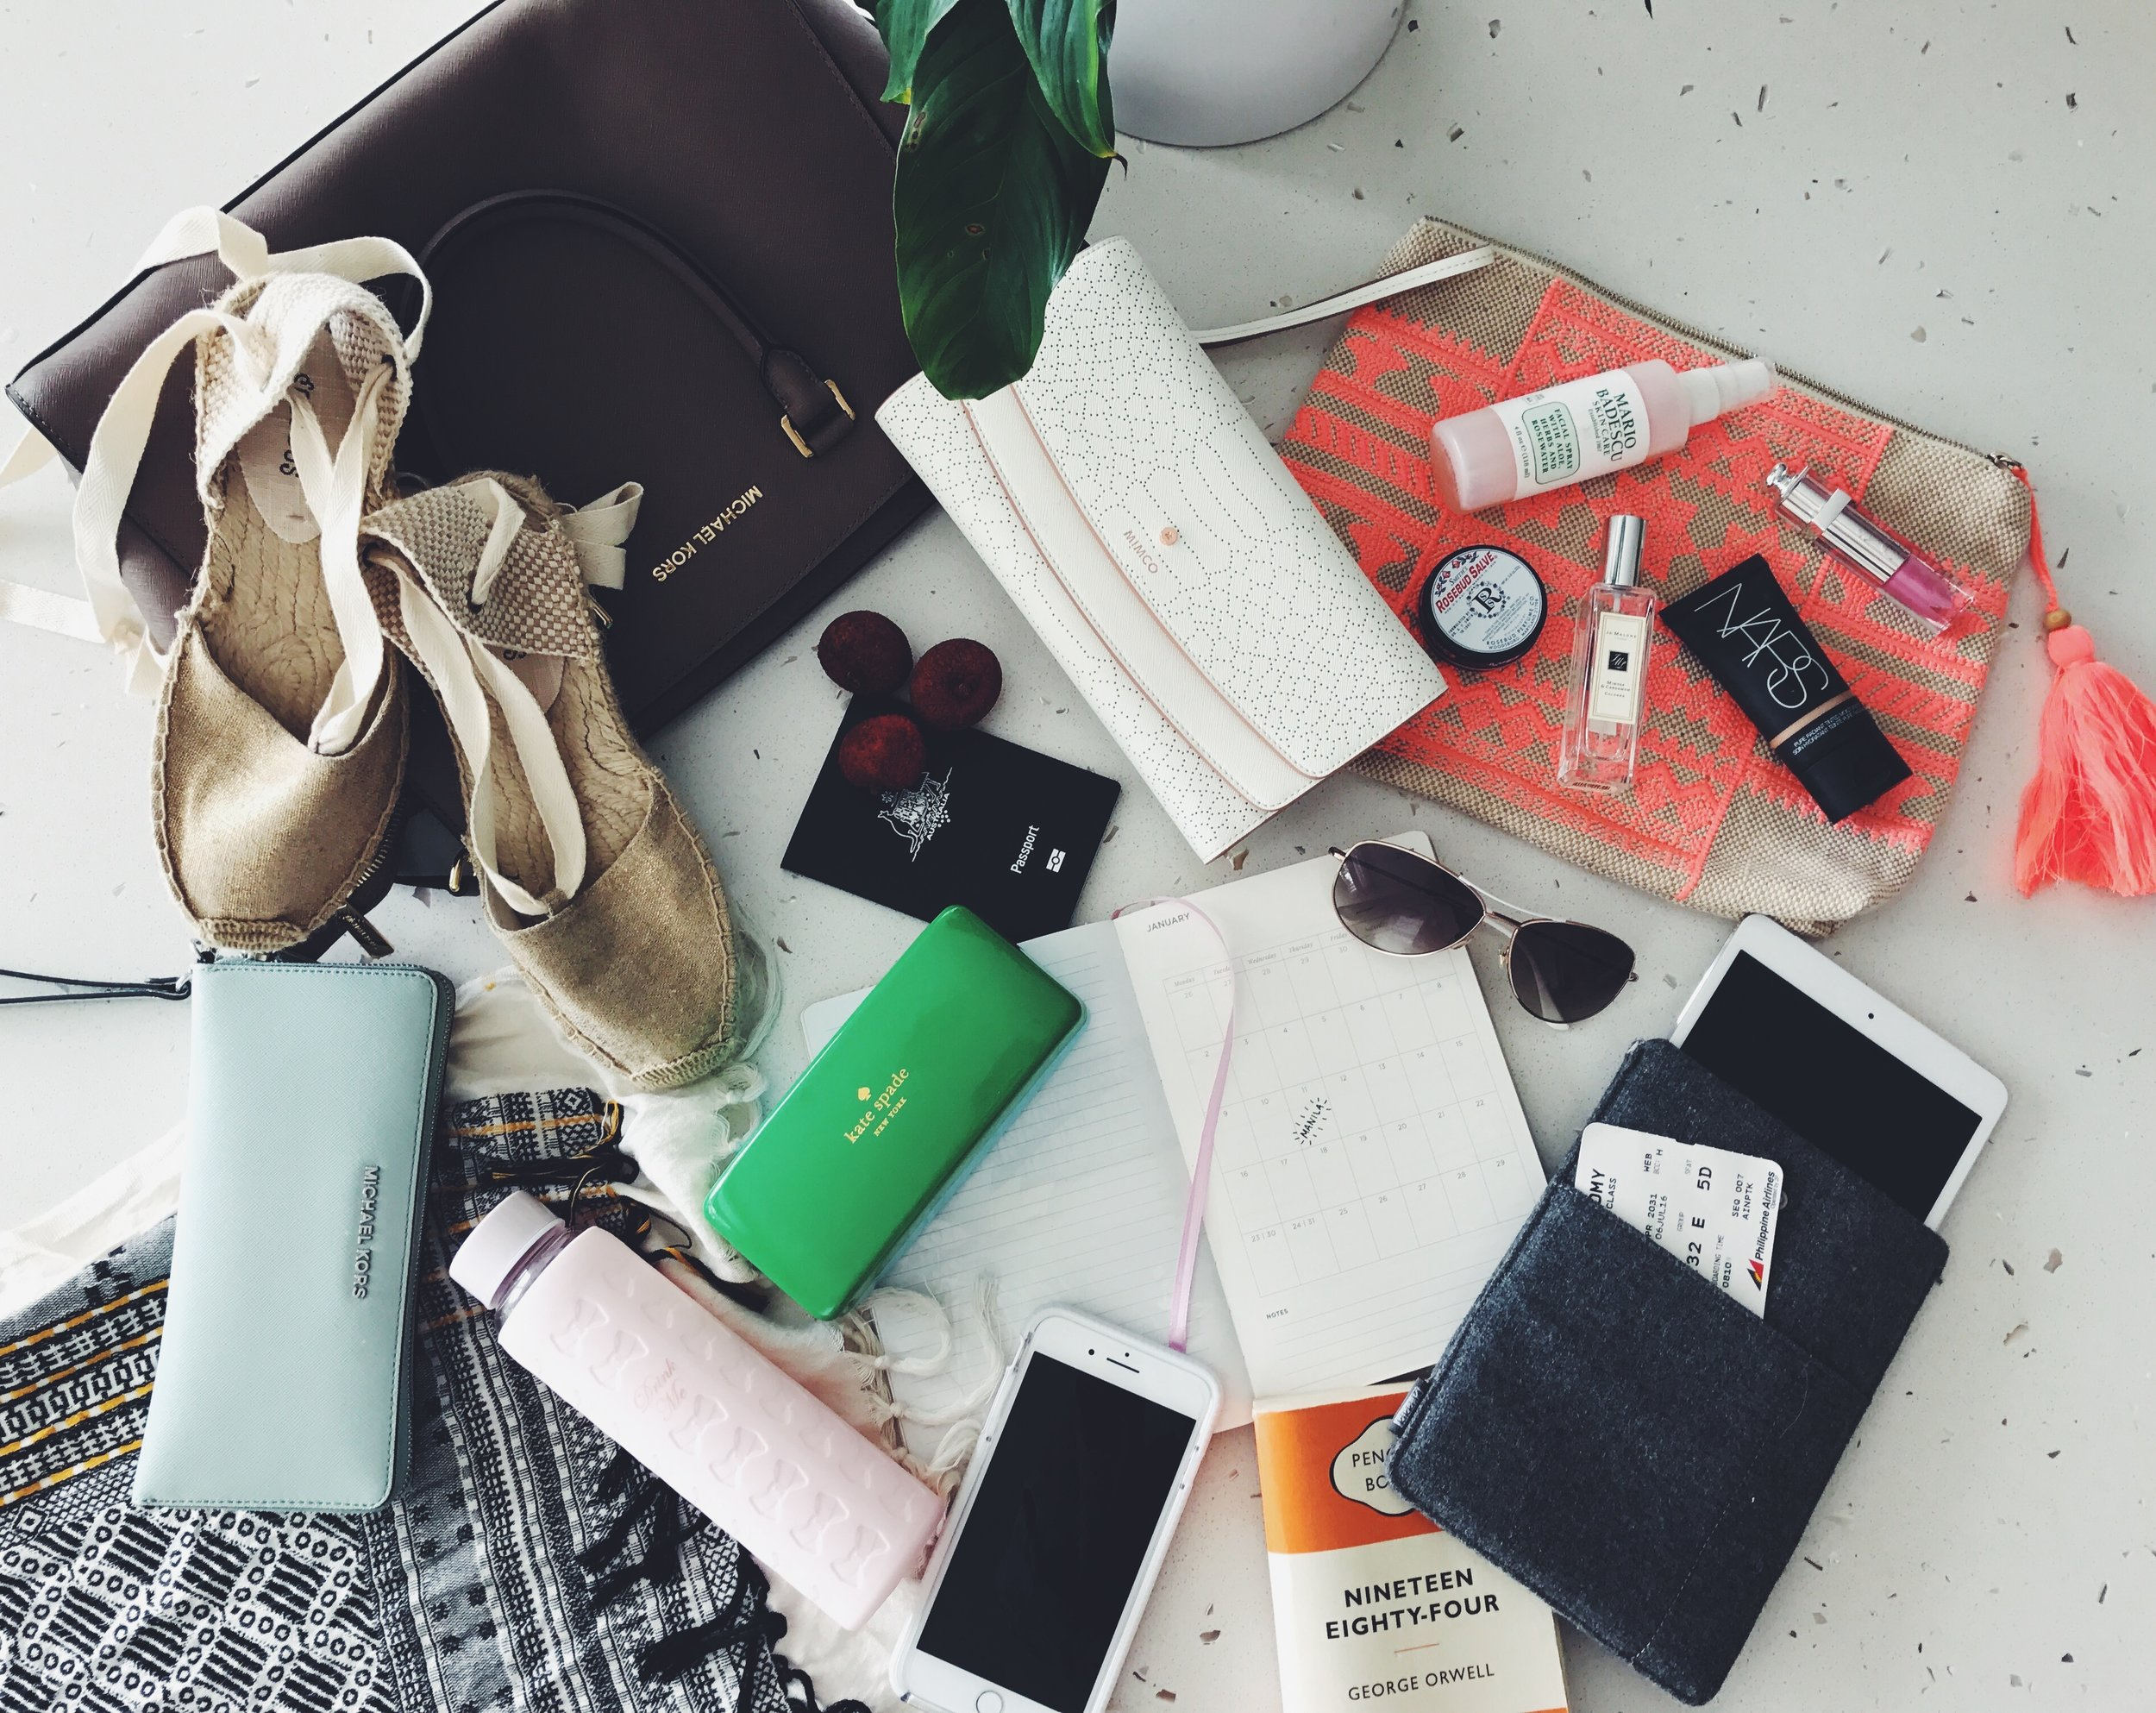 Yes -a collection of perfectly constructed pretty stuff that can also be quite useful both in flight and in travel.